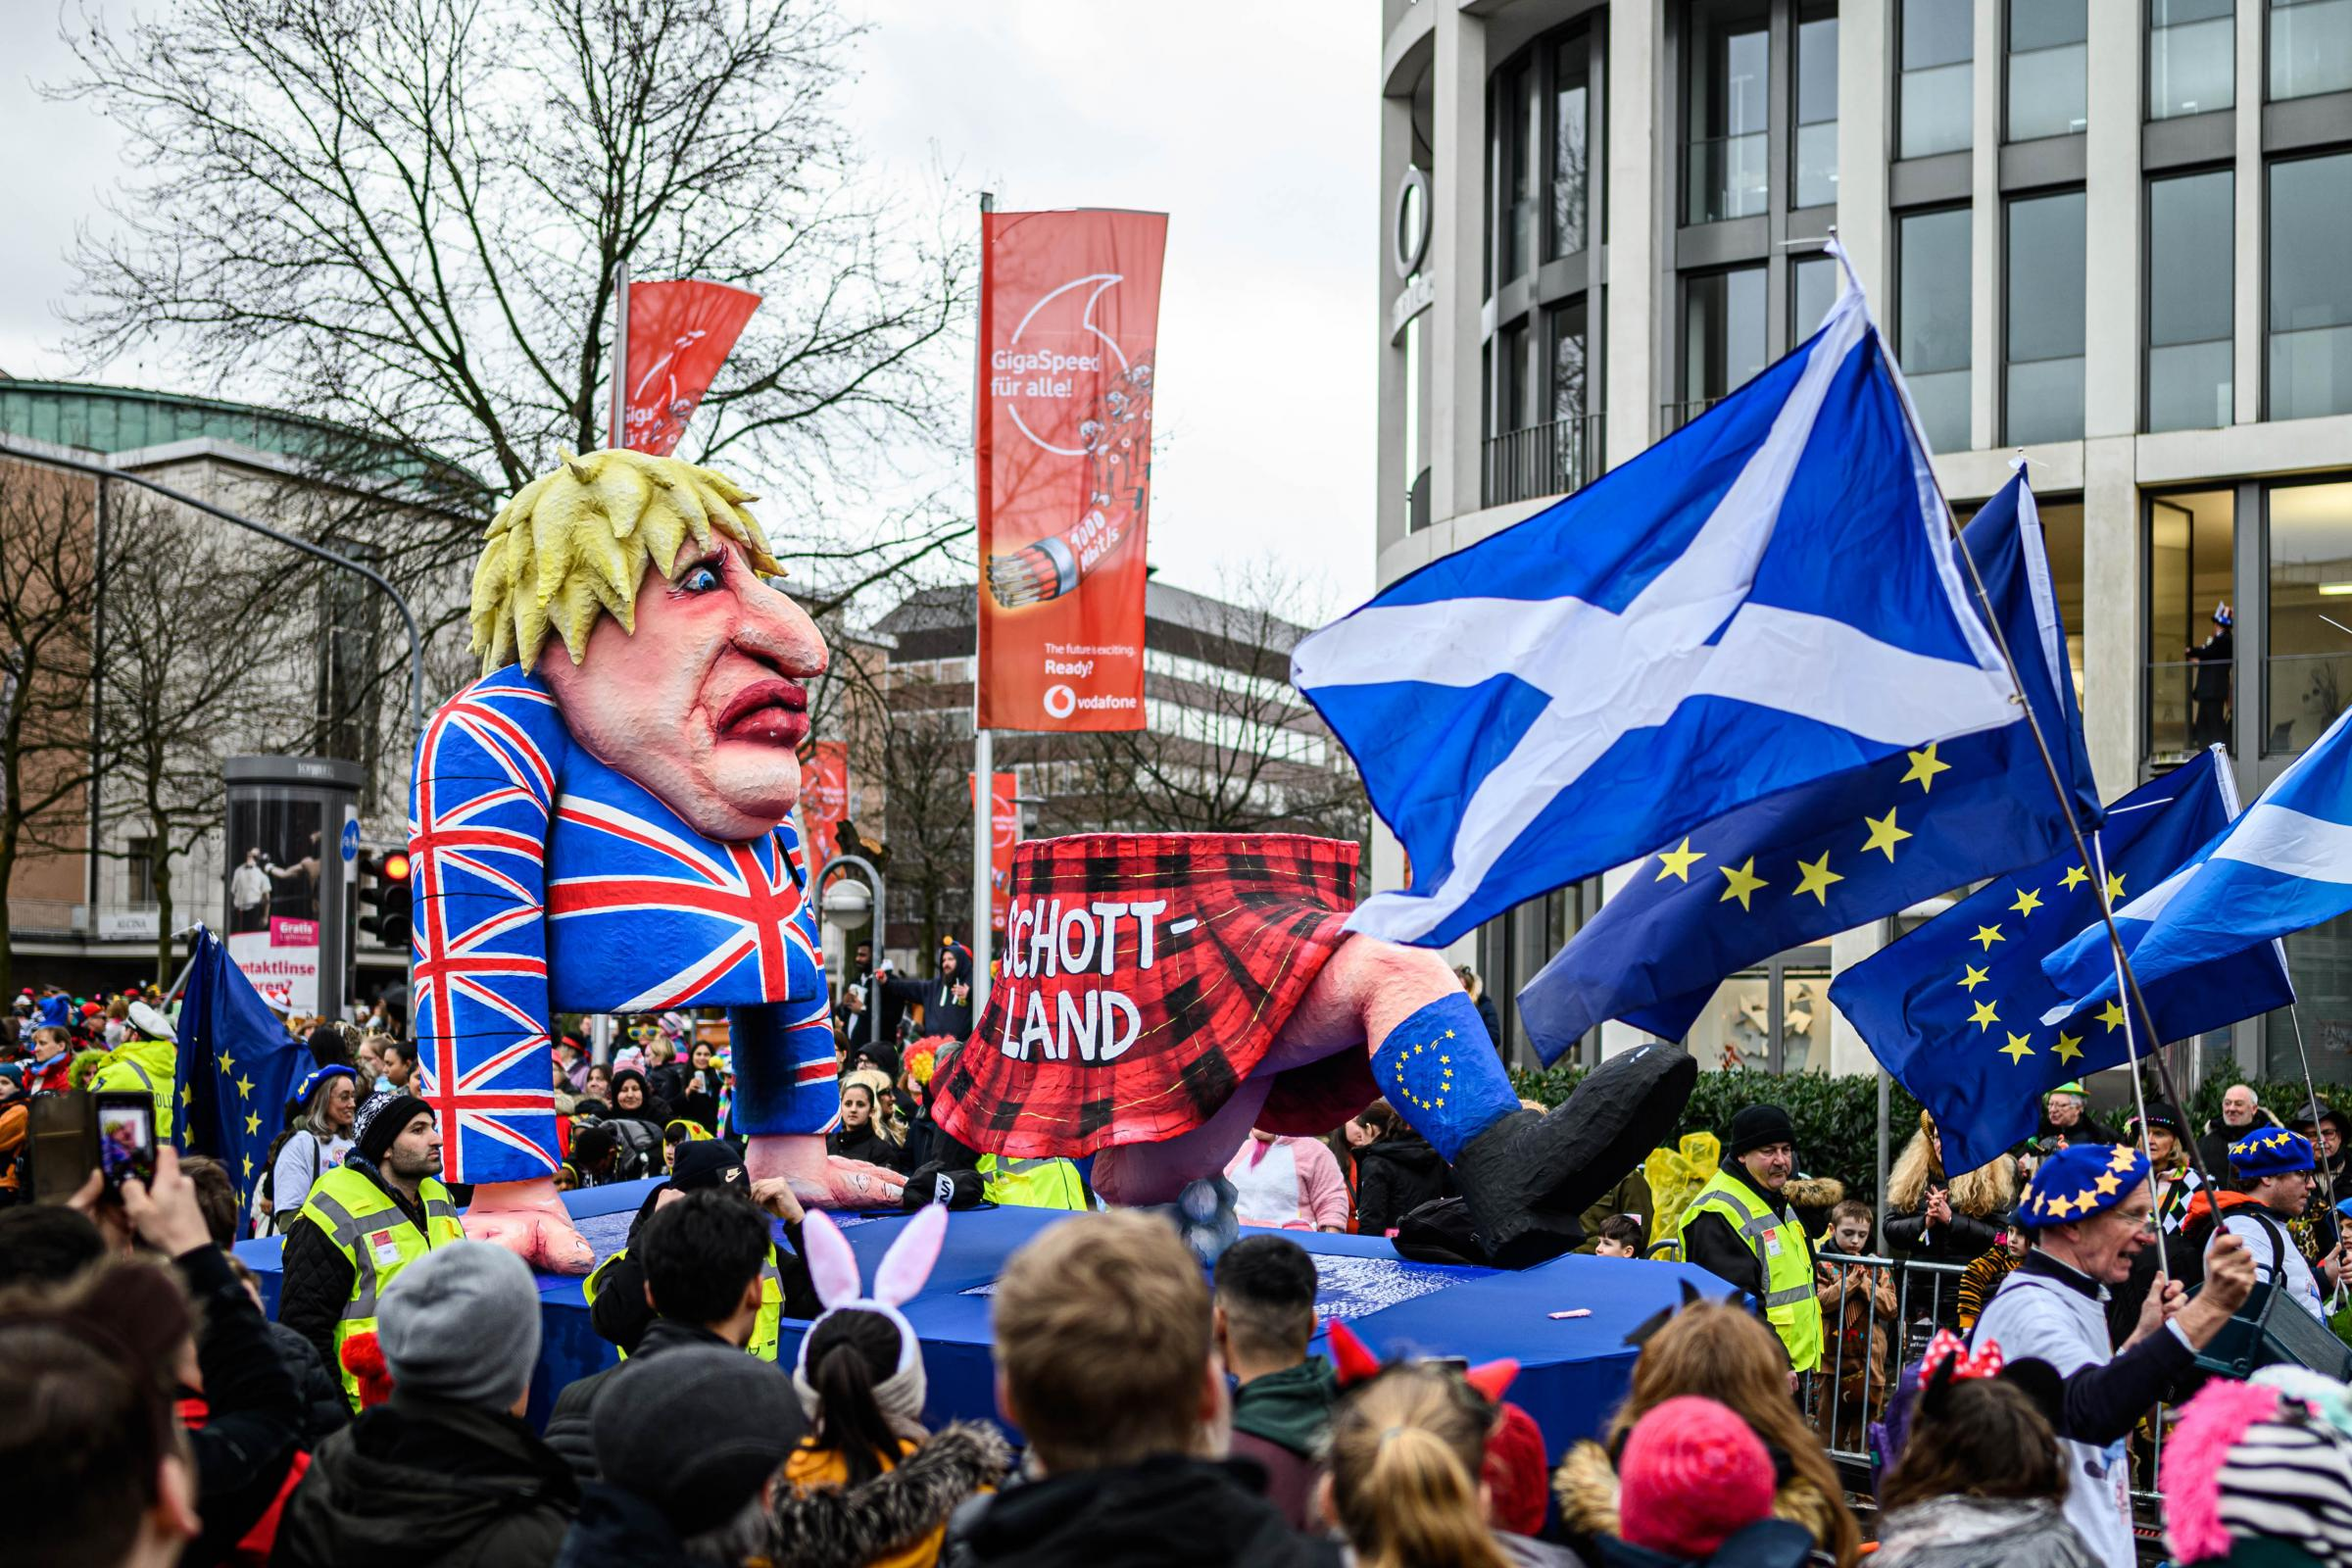 What Germany thinks about Scotland, indyref2 and Johnson's Brexit stance